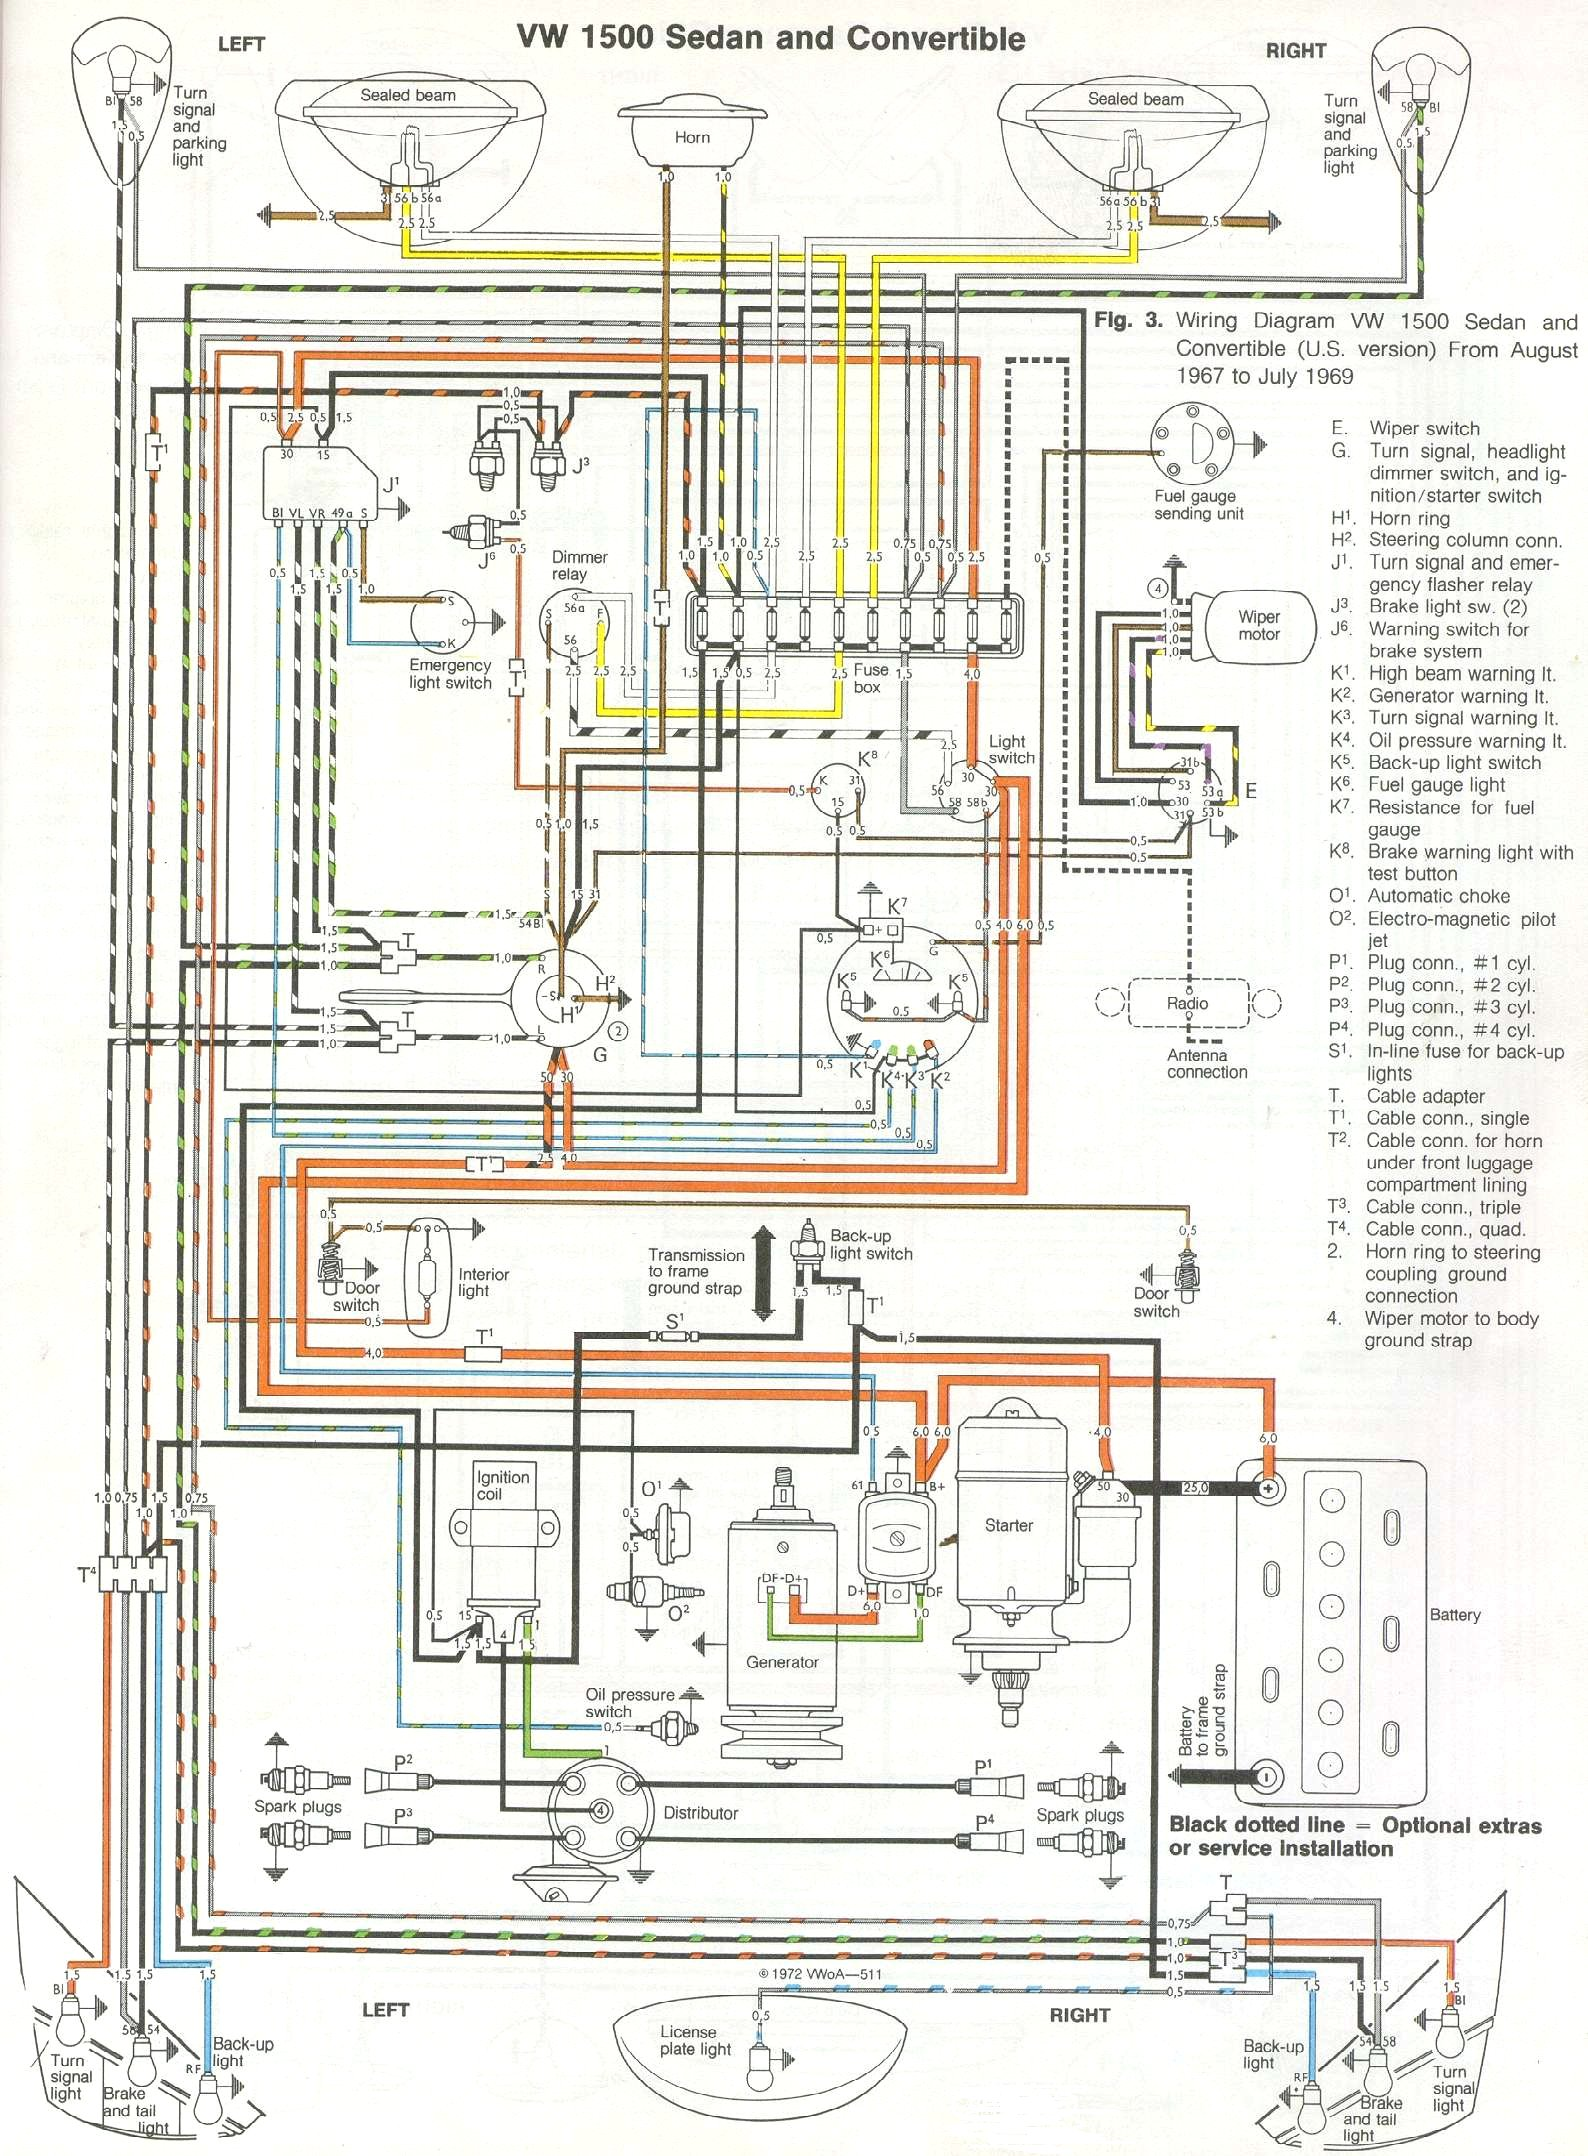 2006 Dodge Charger Wiring Harness Diagram Great Design Of 2008 Fuse Box 1969 71 Beetle Thegoldenbug Com 06